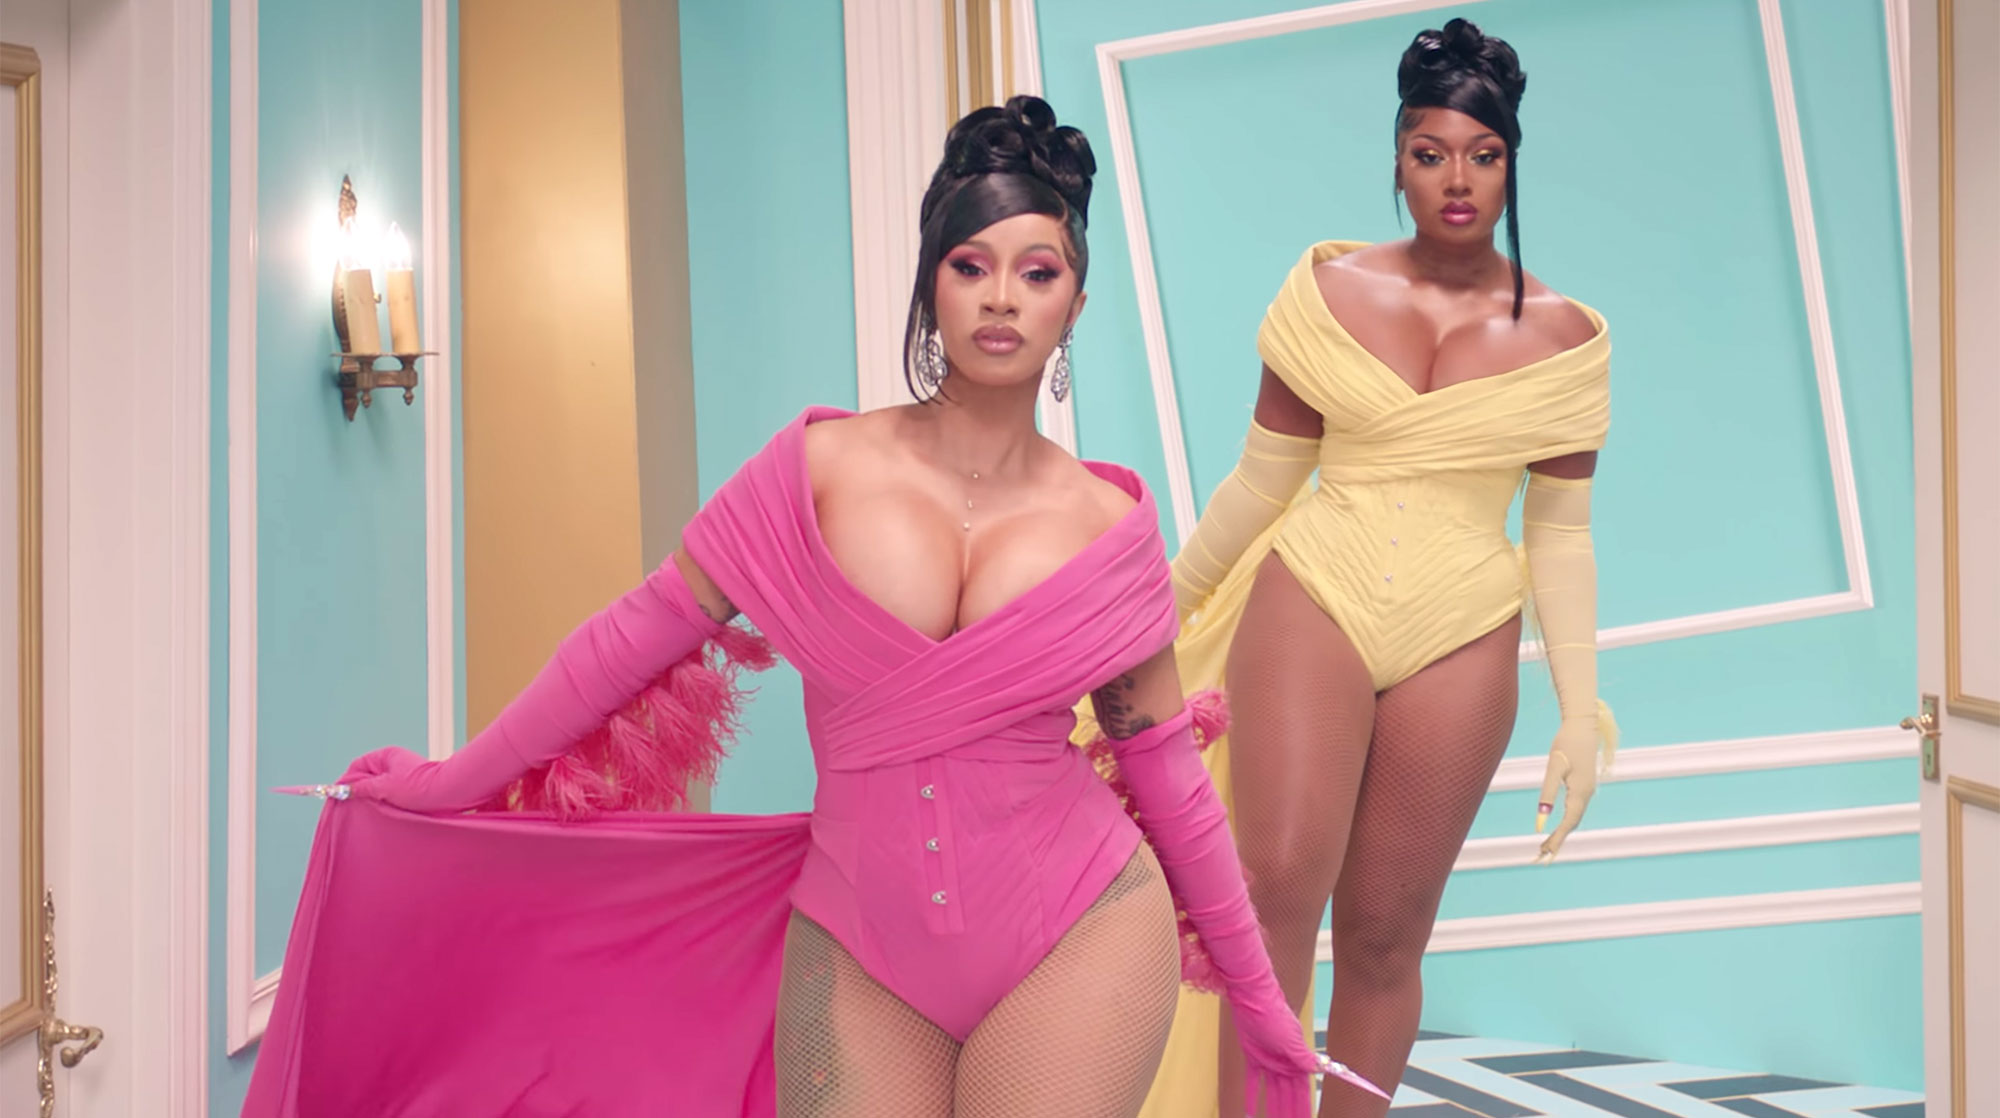 Cardi B - WAP feat. Megan Thee Stallion [Official Music Video]